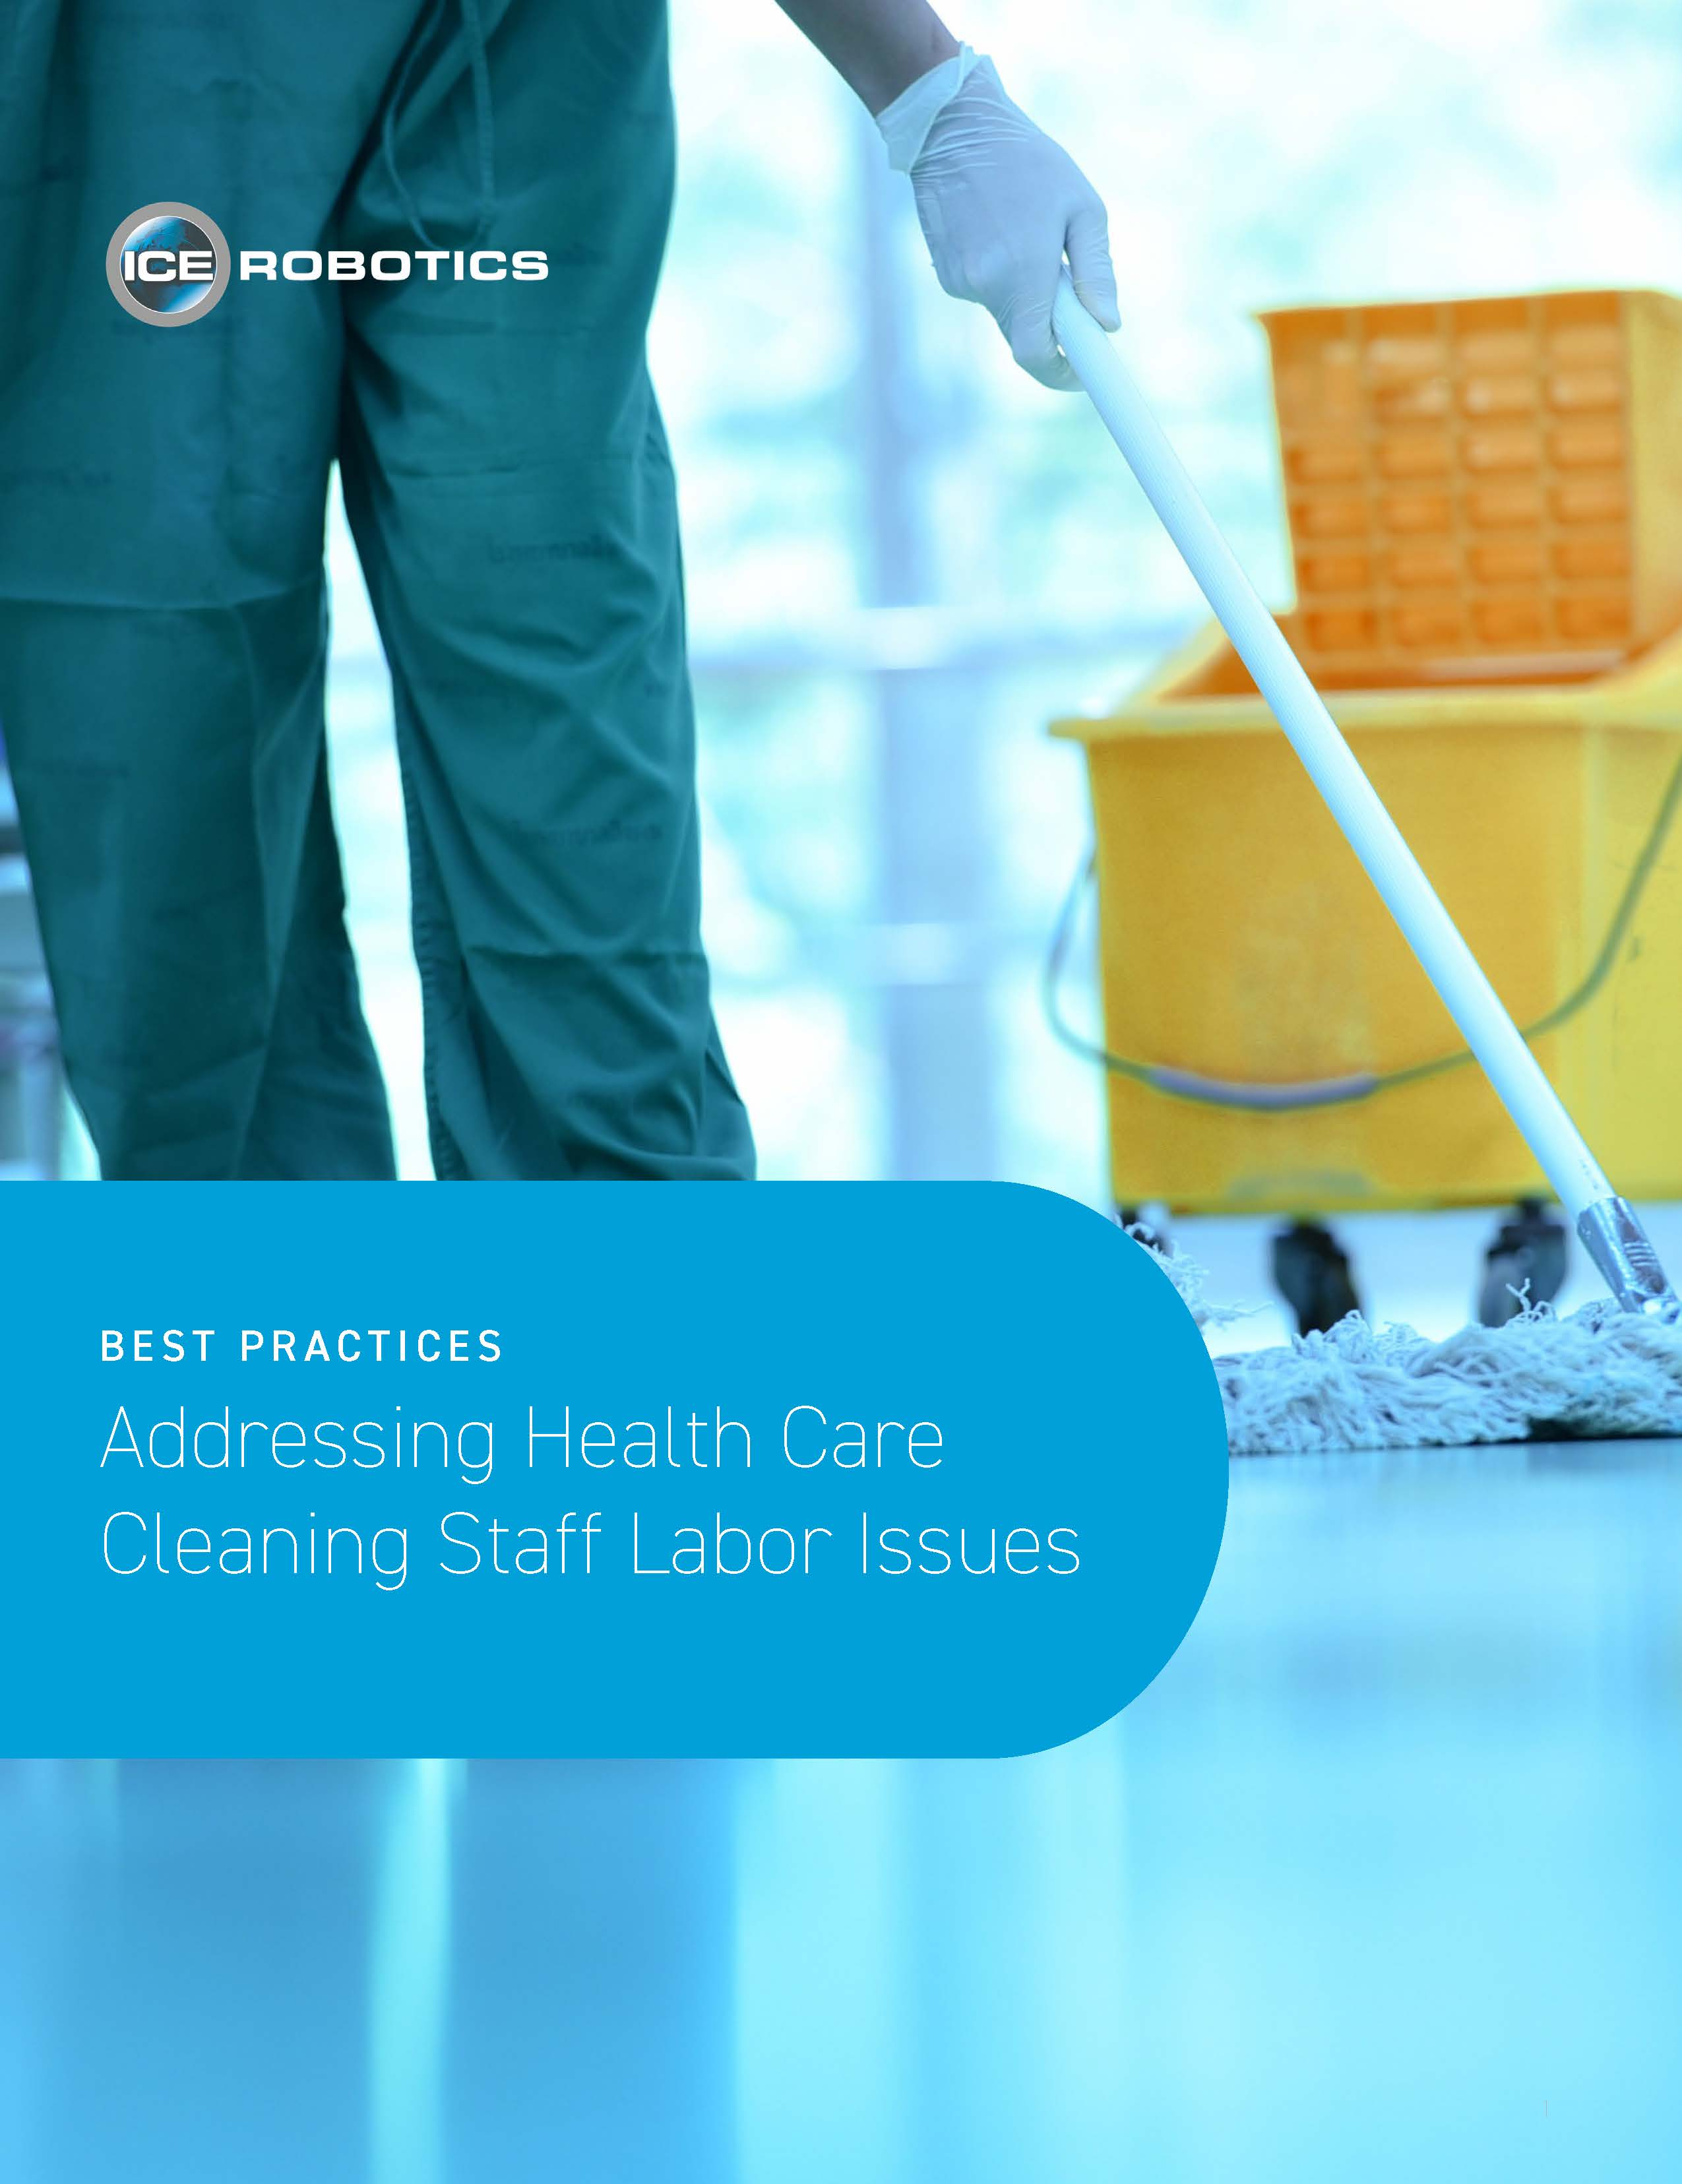 Best Practices: Addressing Health Care Cleaning Staff Labor Issues